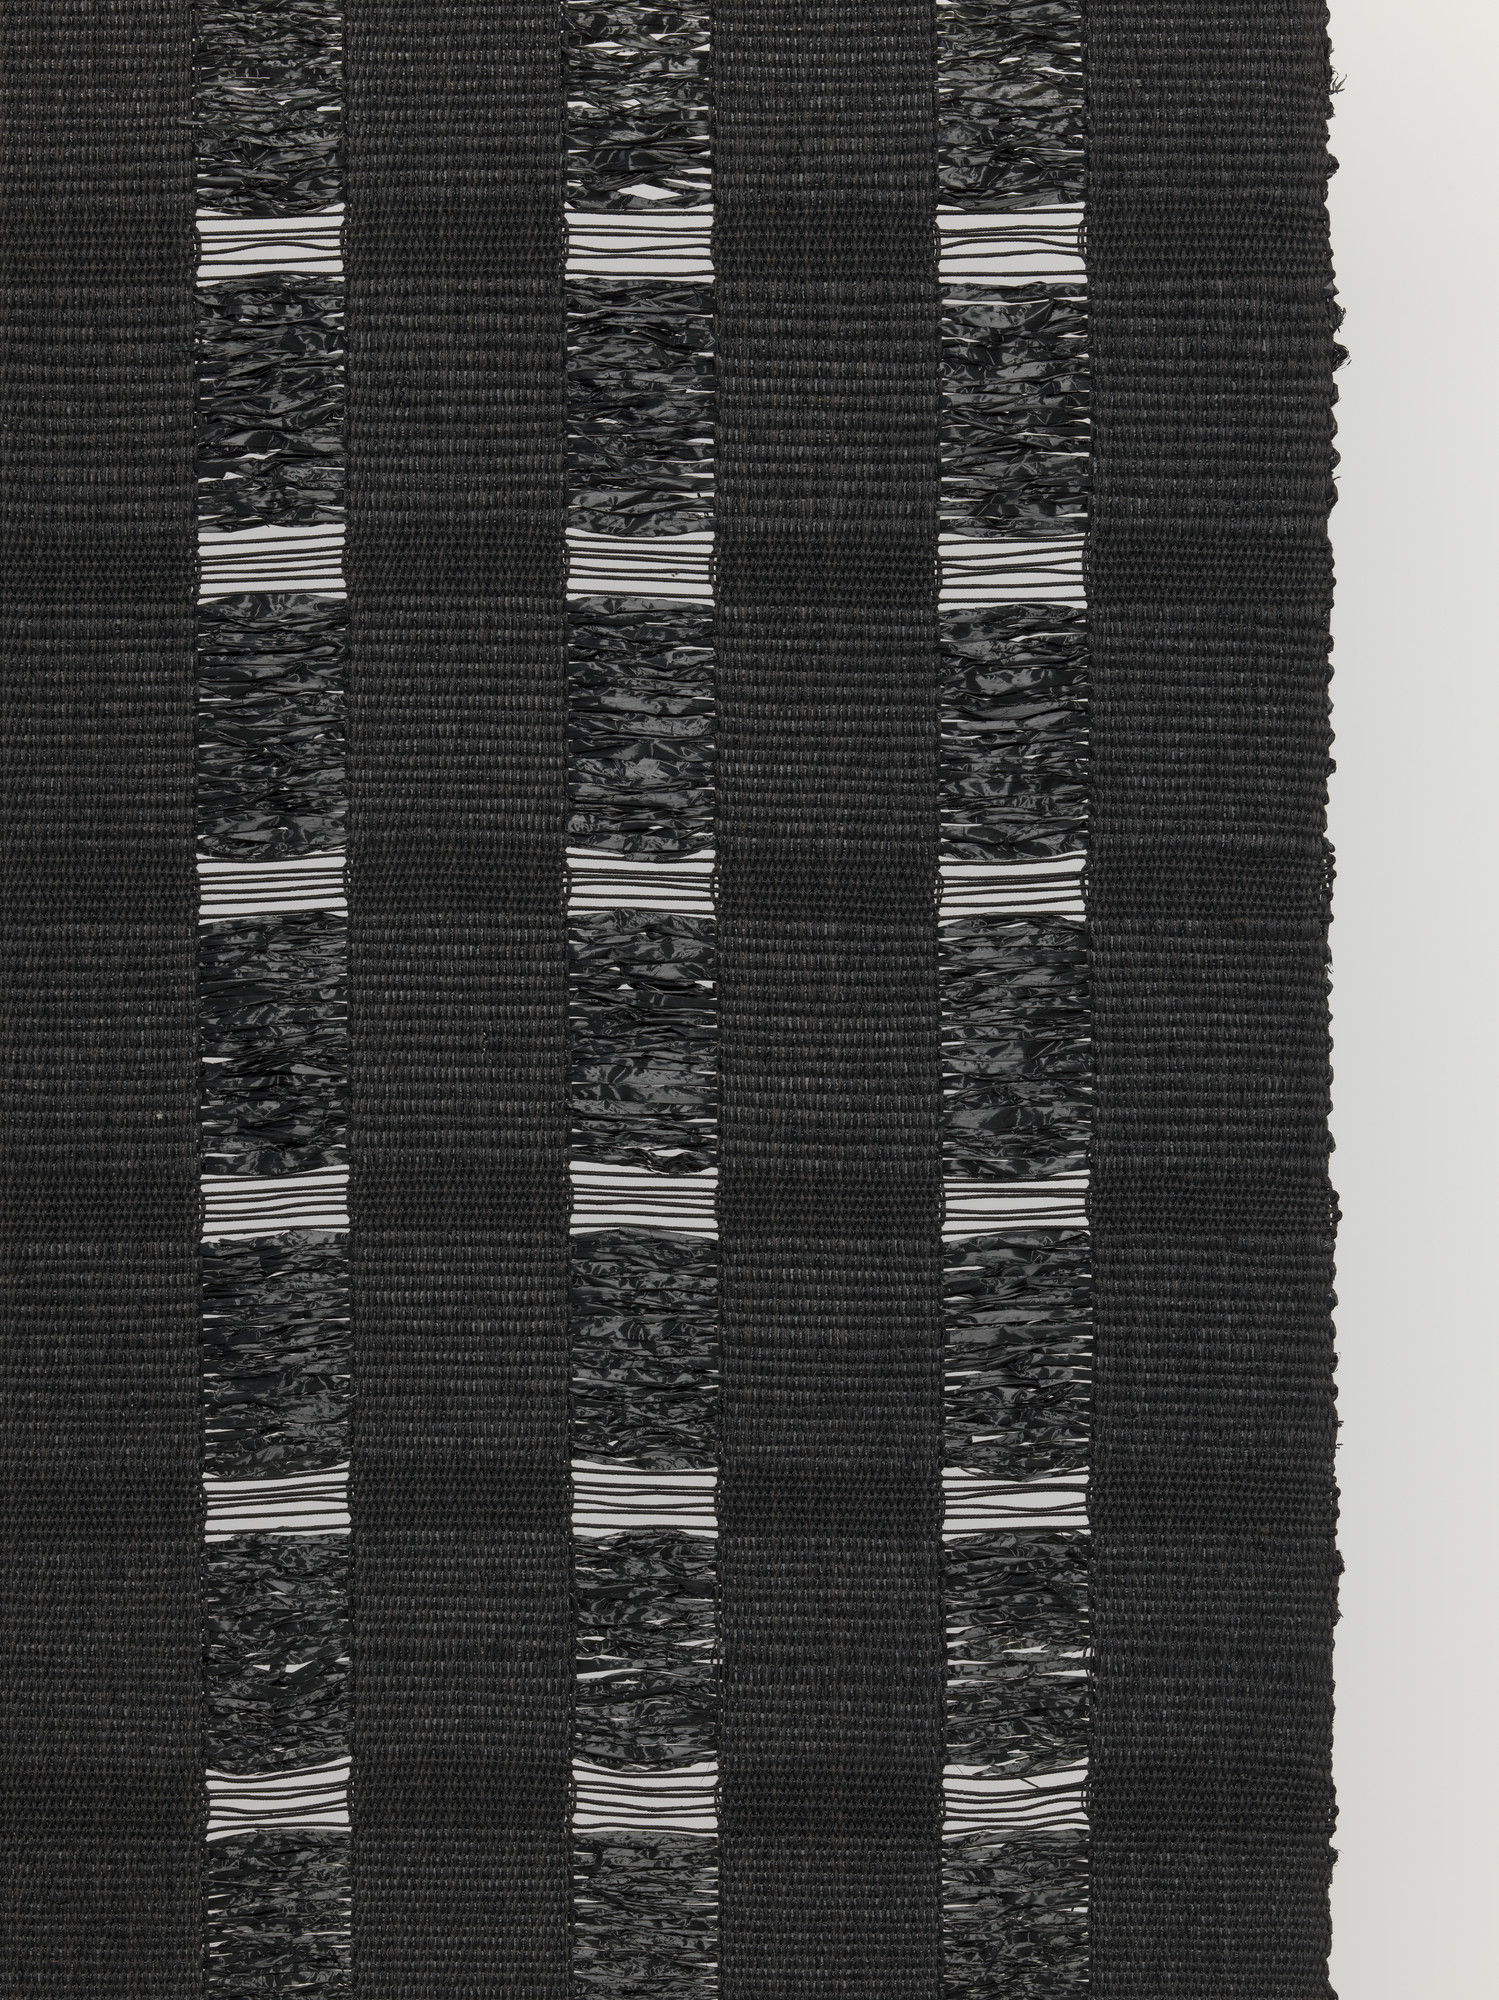 Anni Albers. Free-Hanging Room Divider. 1949